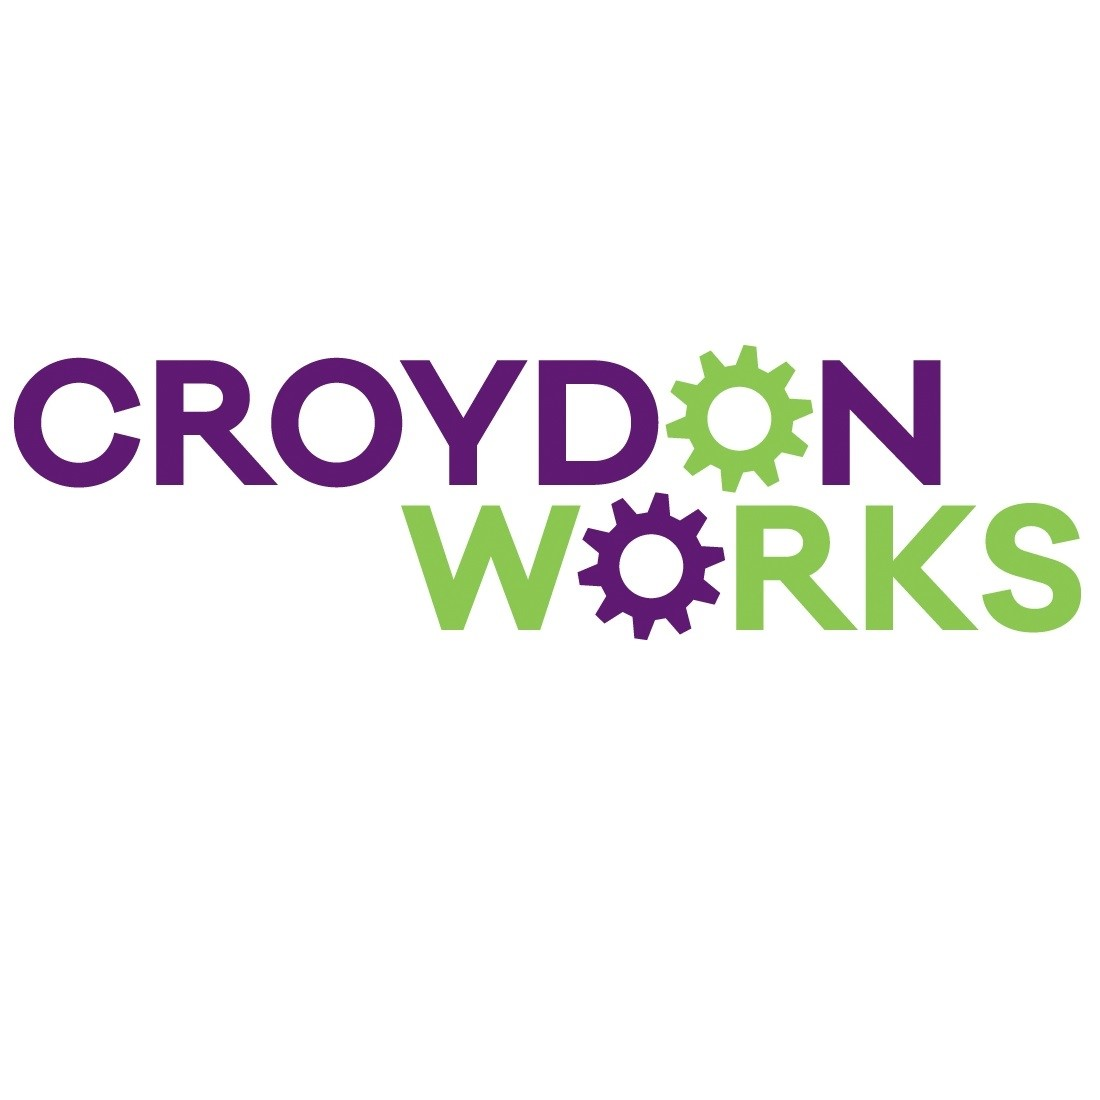 Croydon Works - The First Year